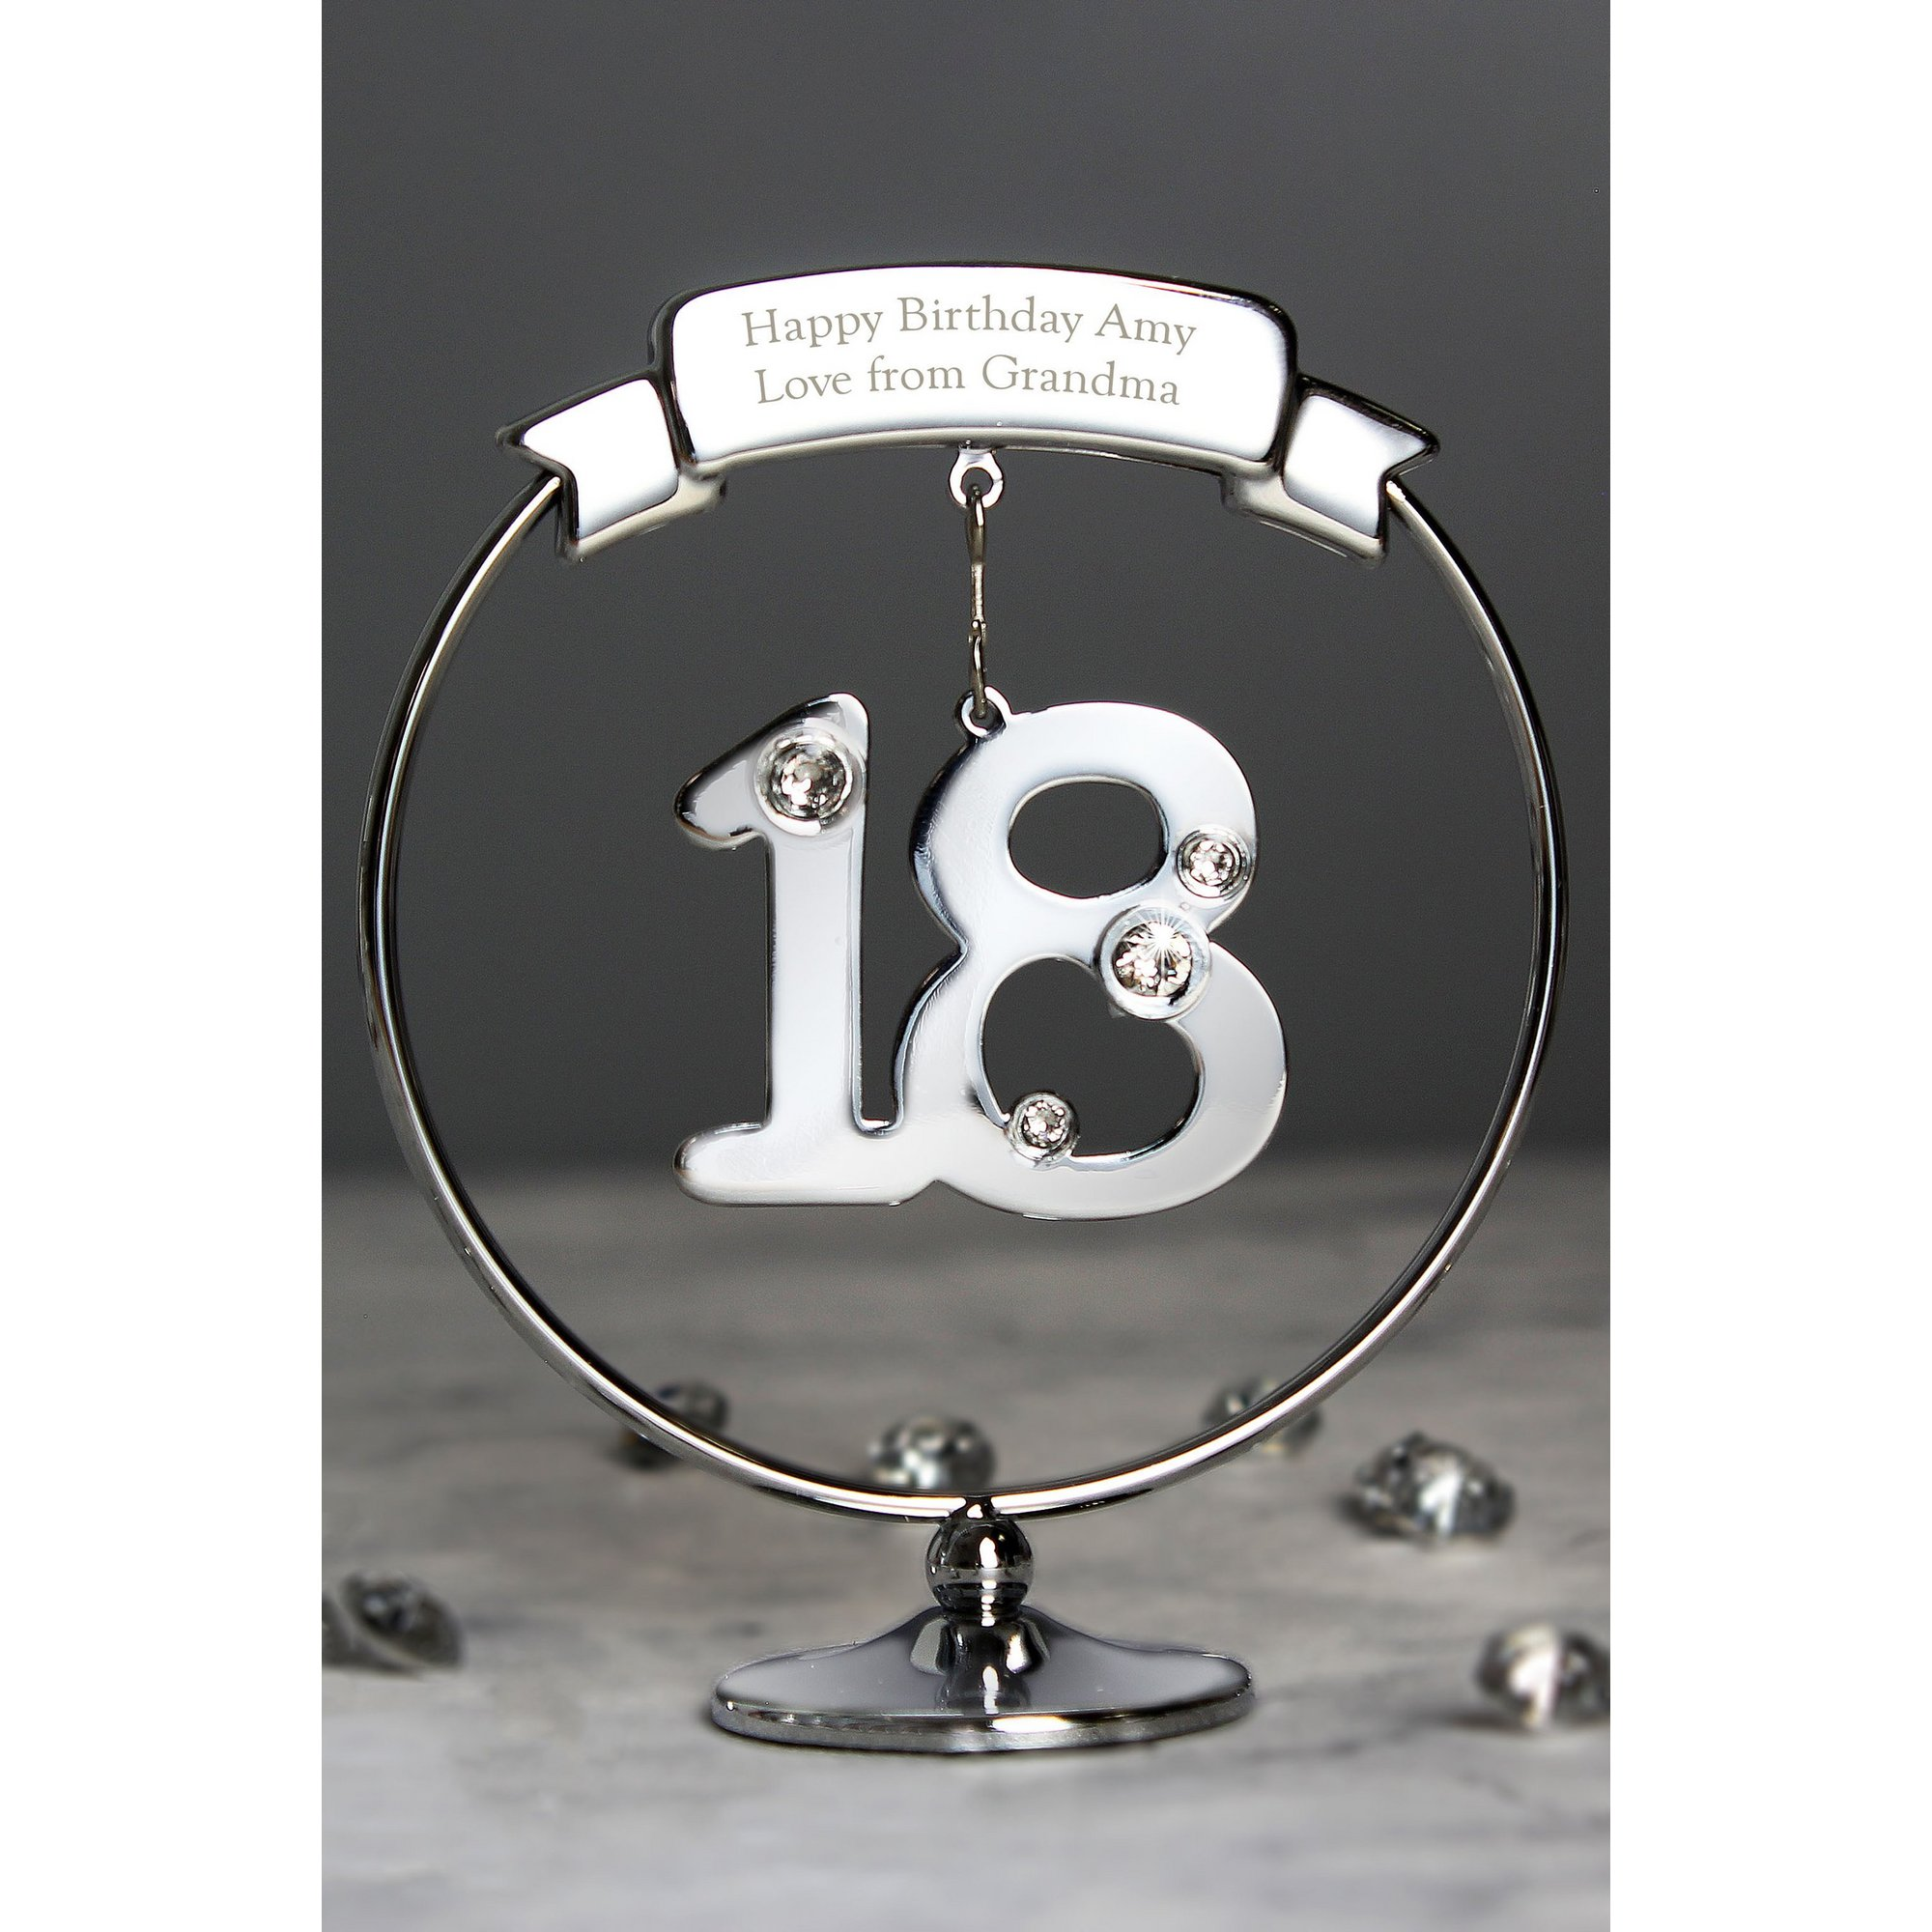 Image of Personalised Crystocraft 18th Celebration Ornament